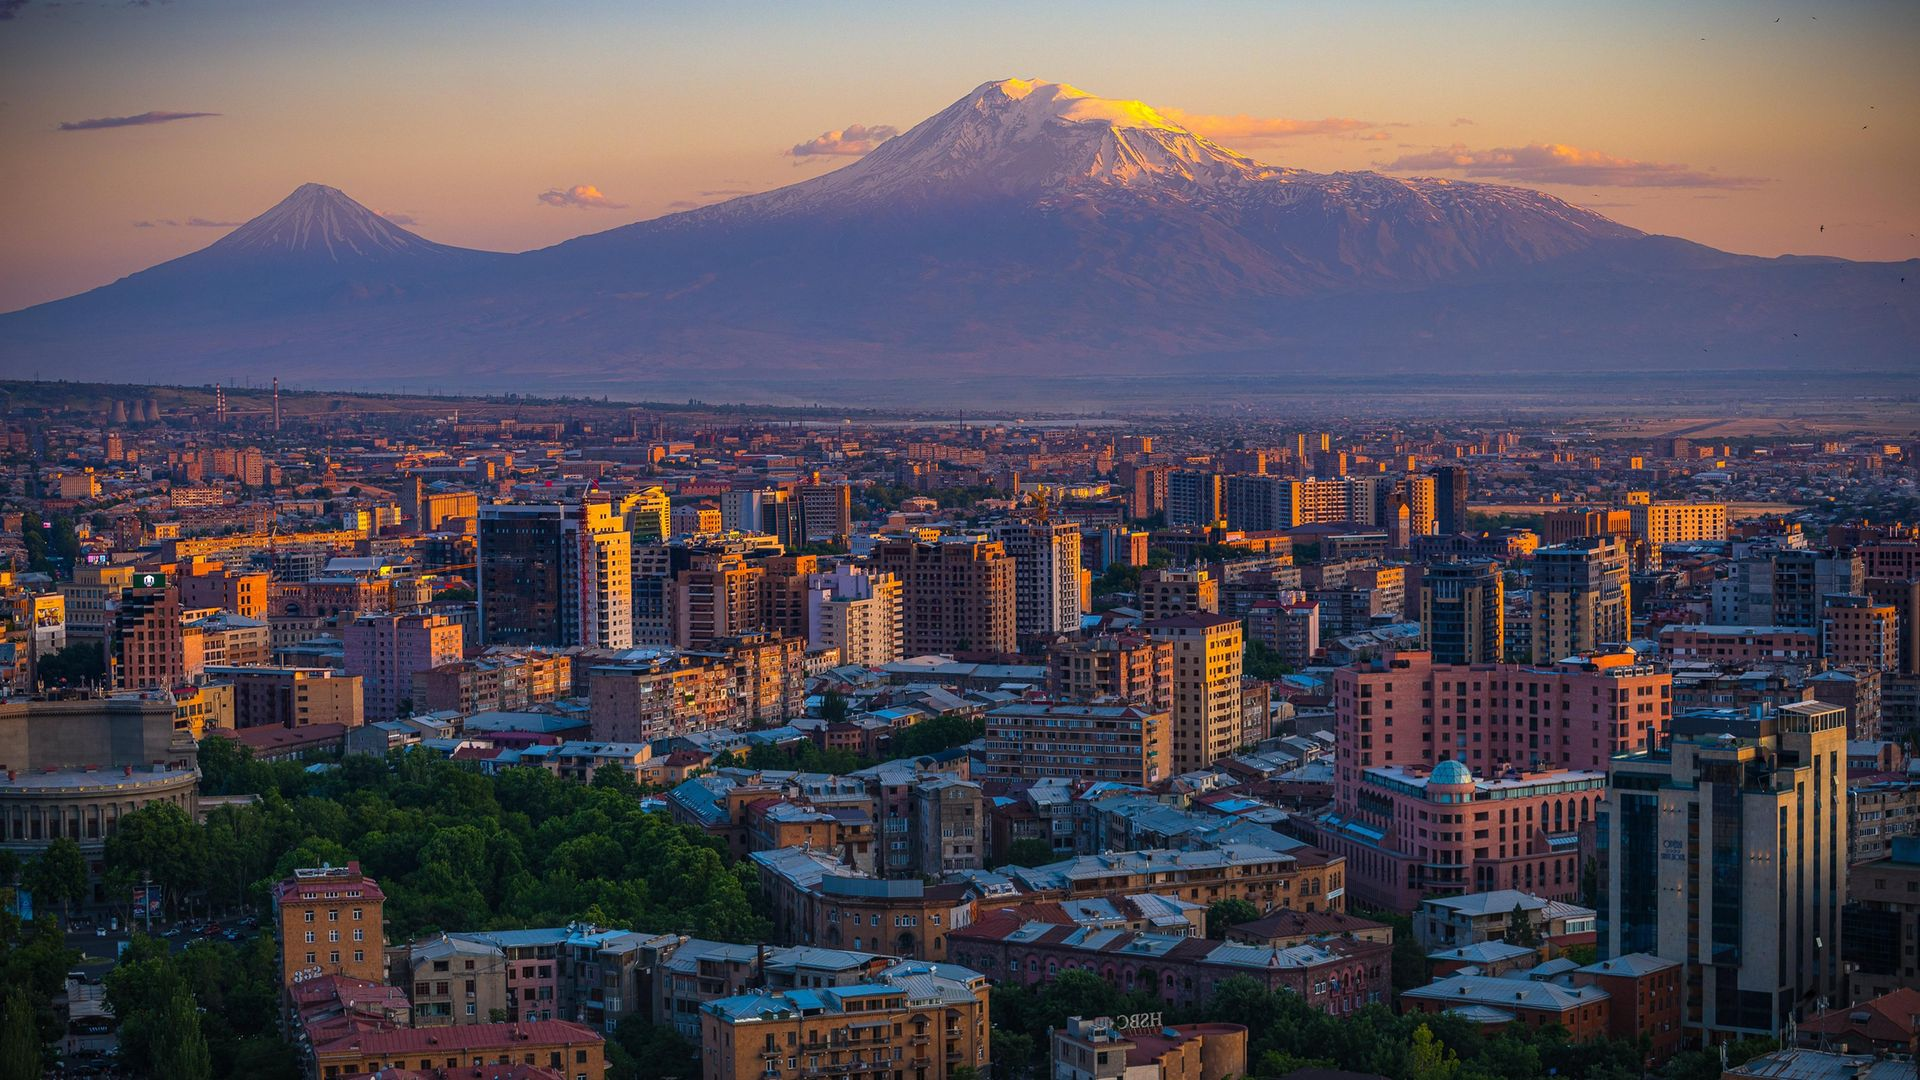 The view of Turkey's Mount Ararat from the Cascade Complex in Yerevan, Armenia - Credit: Getty Images